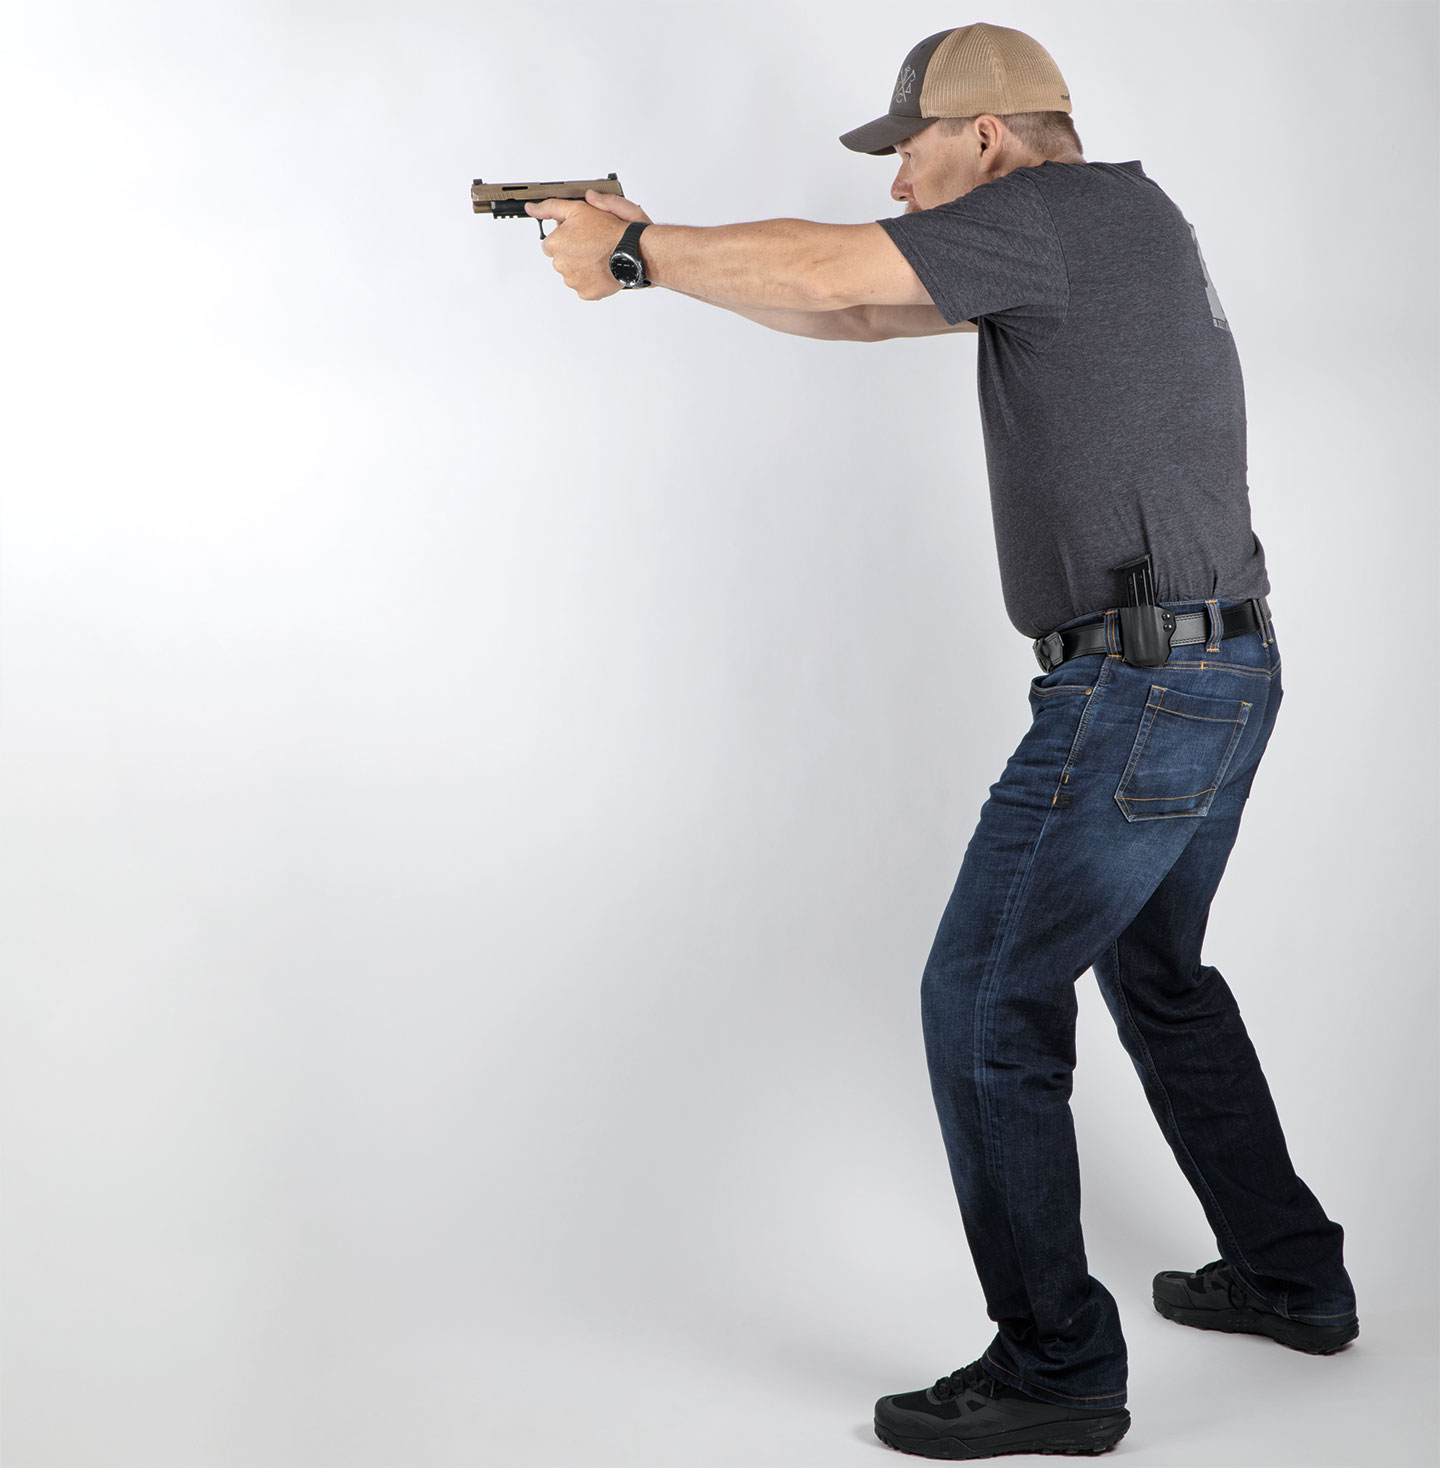 Five-Common-Pistol-Shooting-Errors-4